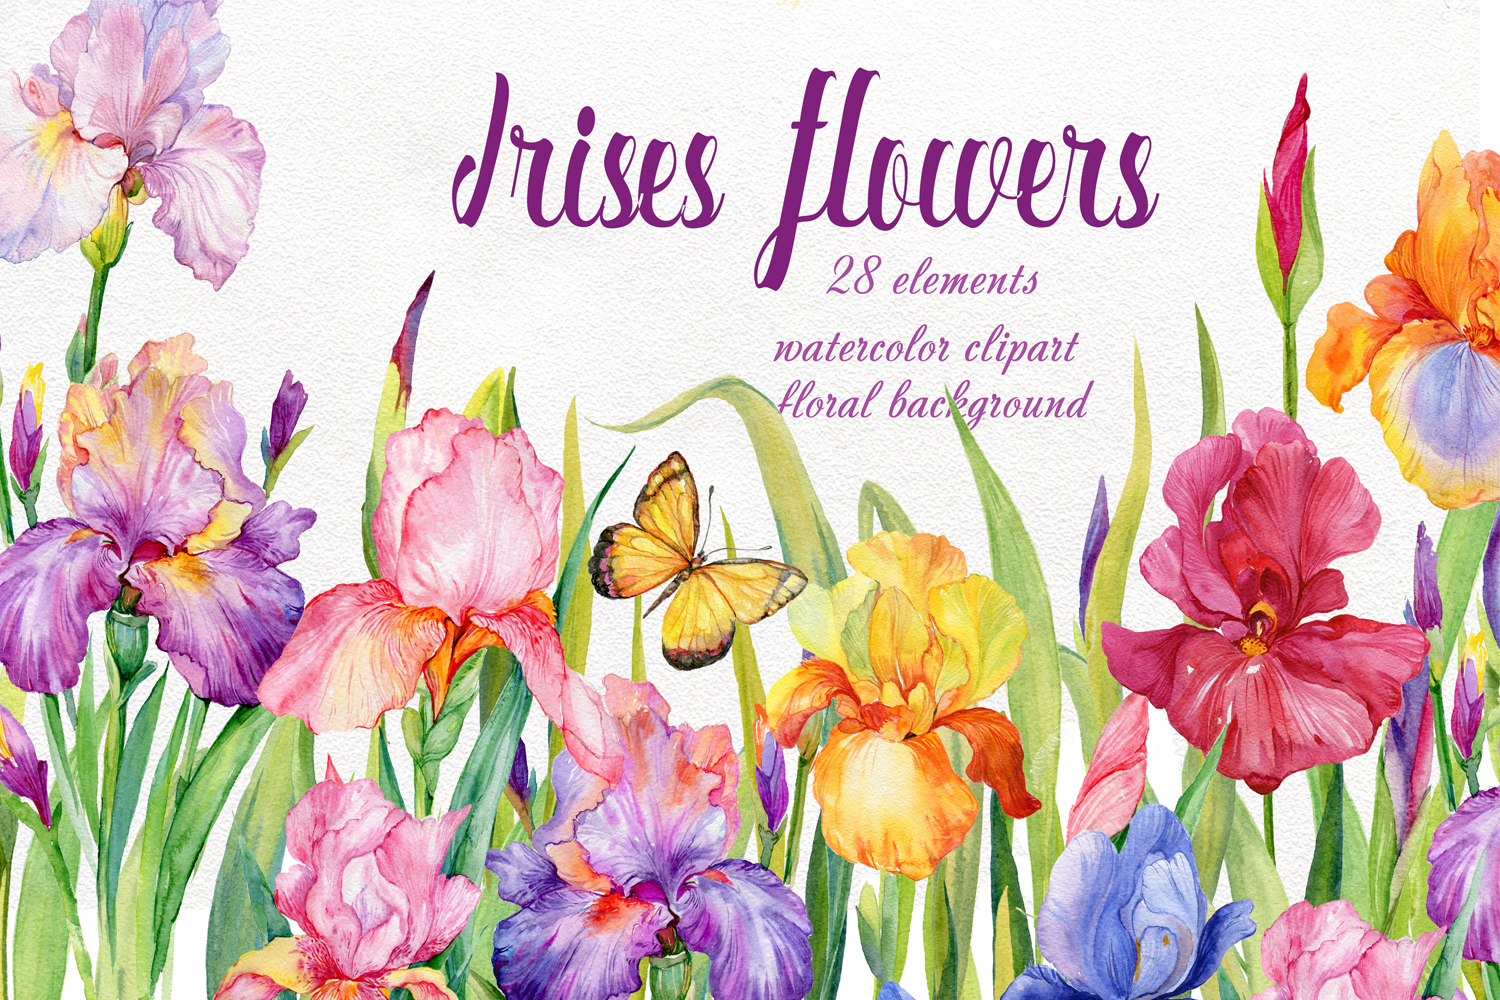 iris flowers. watercolor clipart example image 1